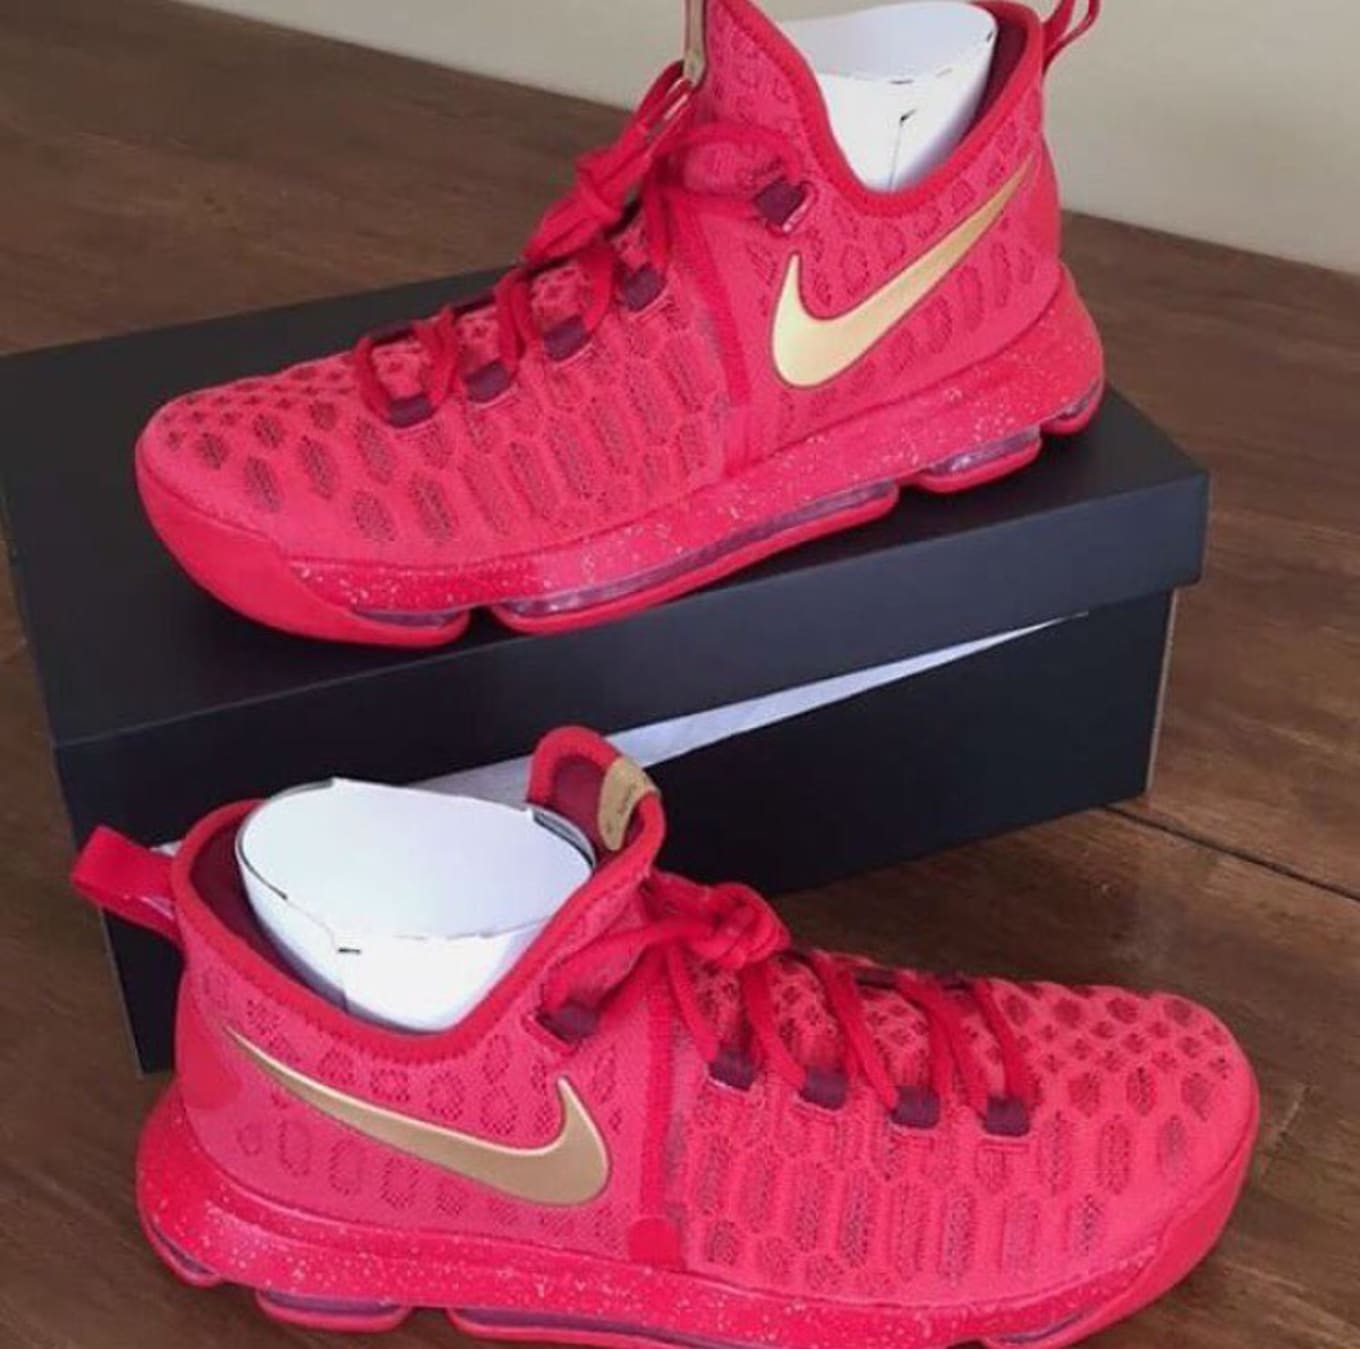 reputable site d74a5 7d5da NIKEiD KD 9 Designs   Sole Collector